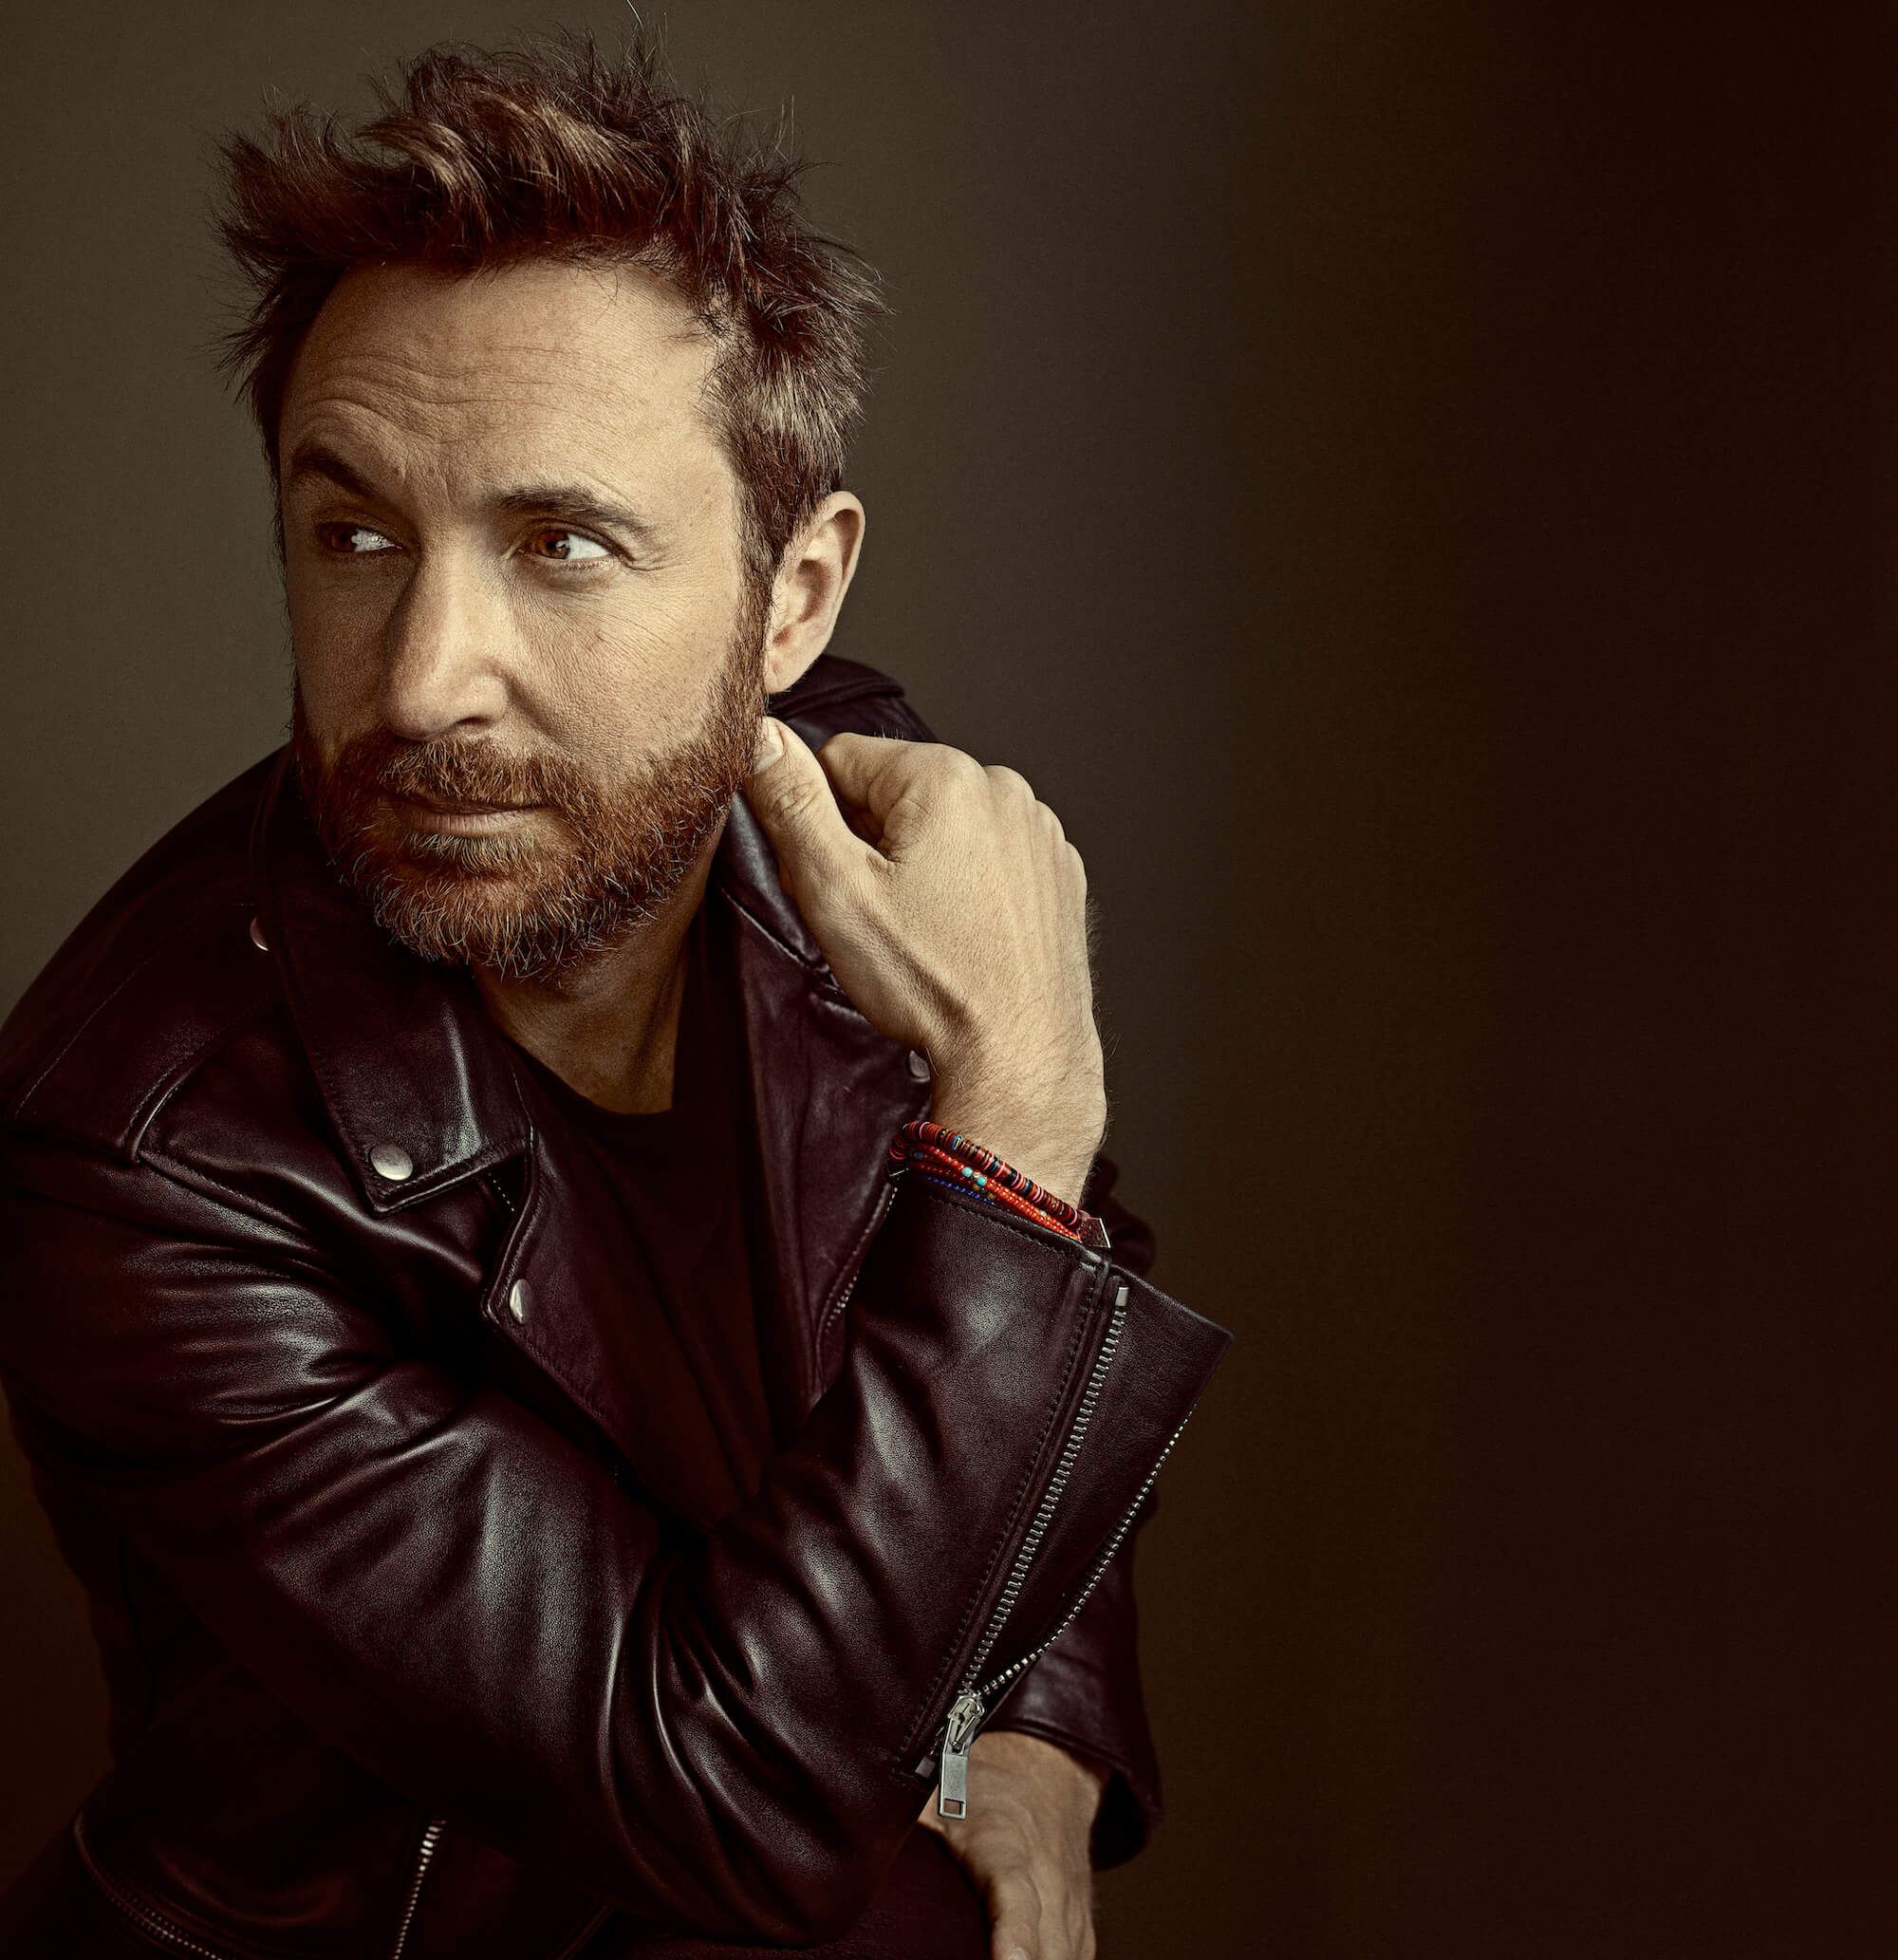 David Guetta Jack Back interview